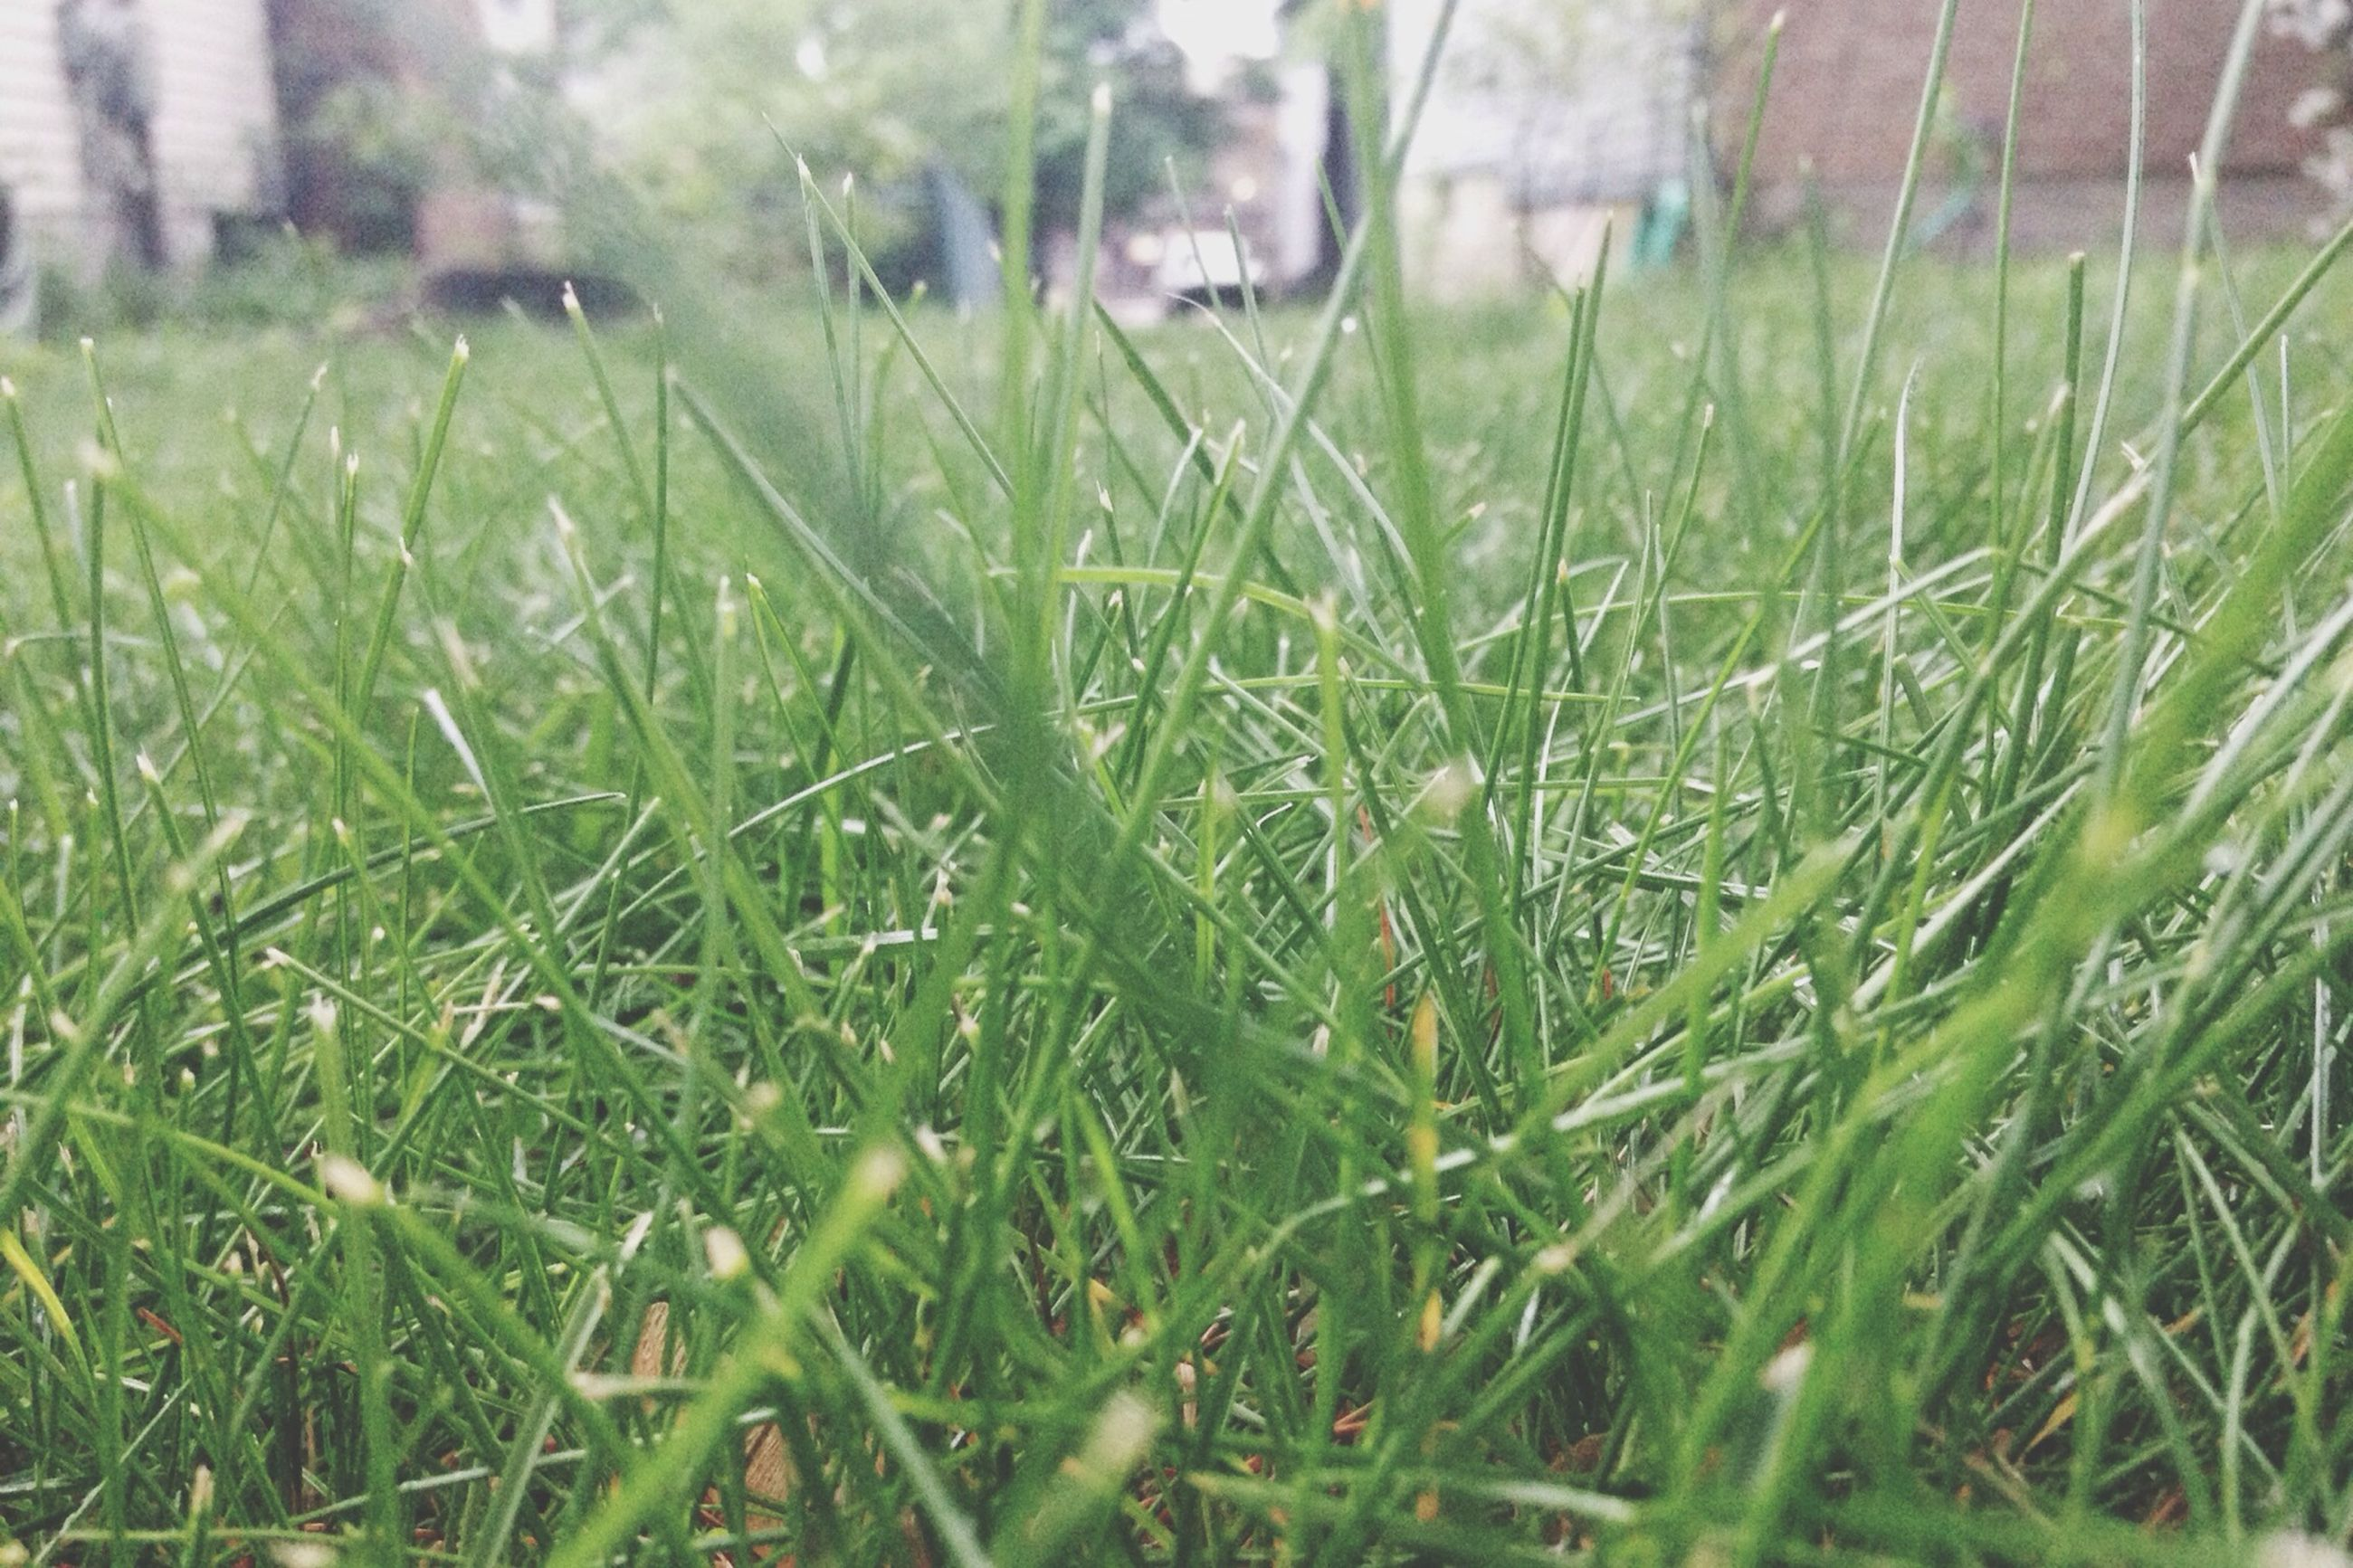 grass, green color, field, growth, grassy, blade of grass, nature, plant, selective focus, focus on foreground, beauty in nature, tranquility, close-up, day, outdoors, drop, green, no people, wet, freshness